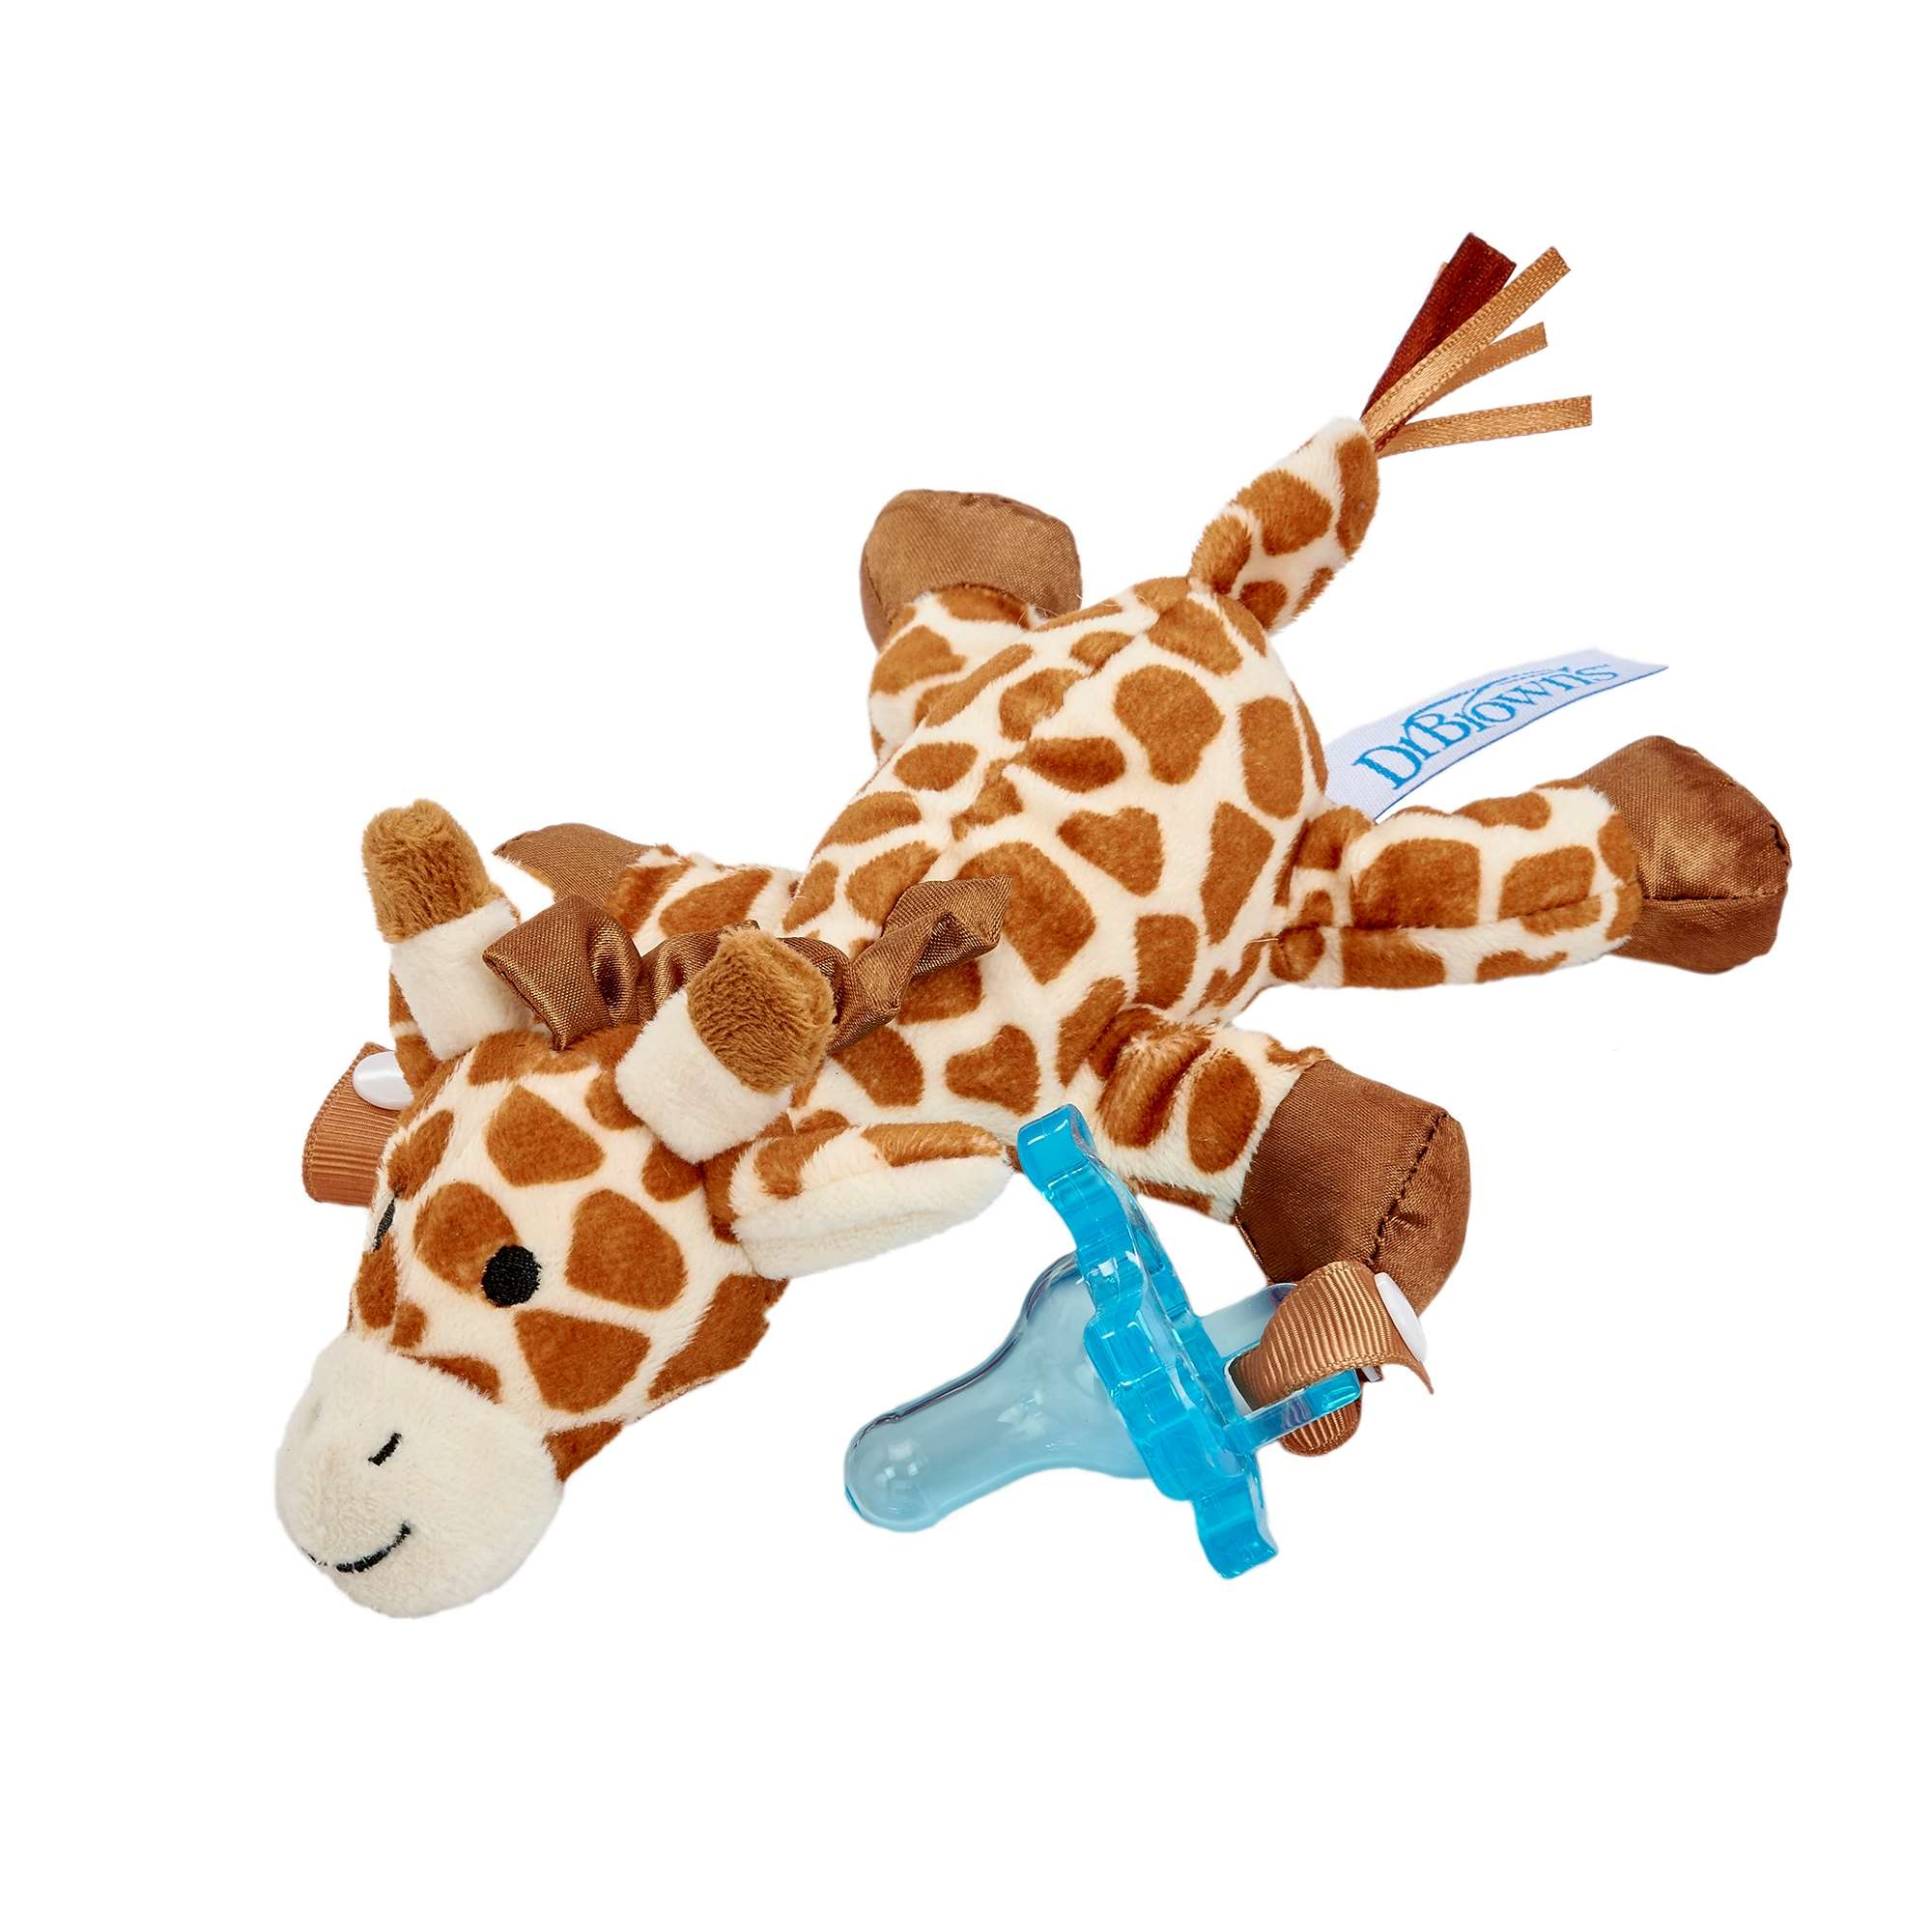 9300 - drbrown lovey - gerry the giraffe - blå napp _ac047_prod